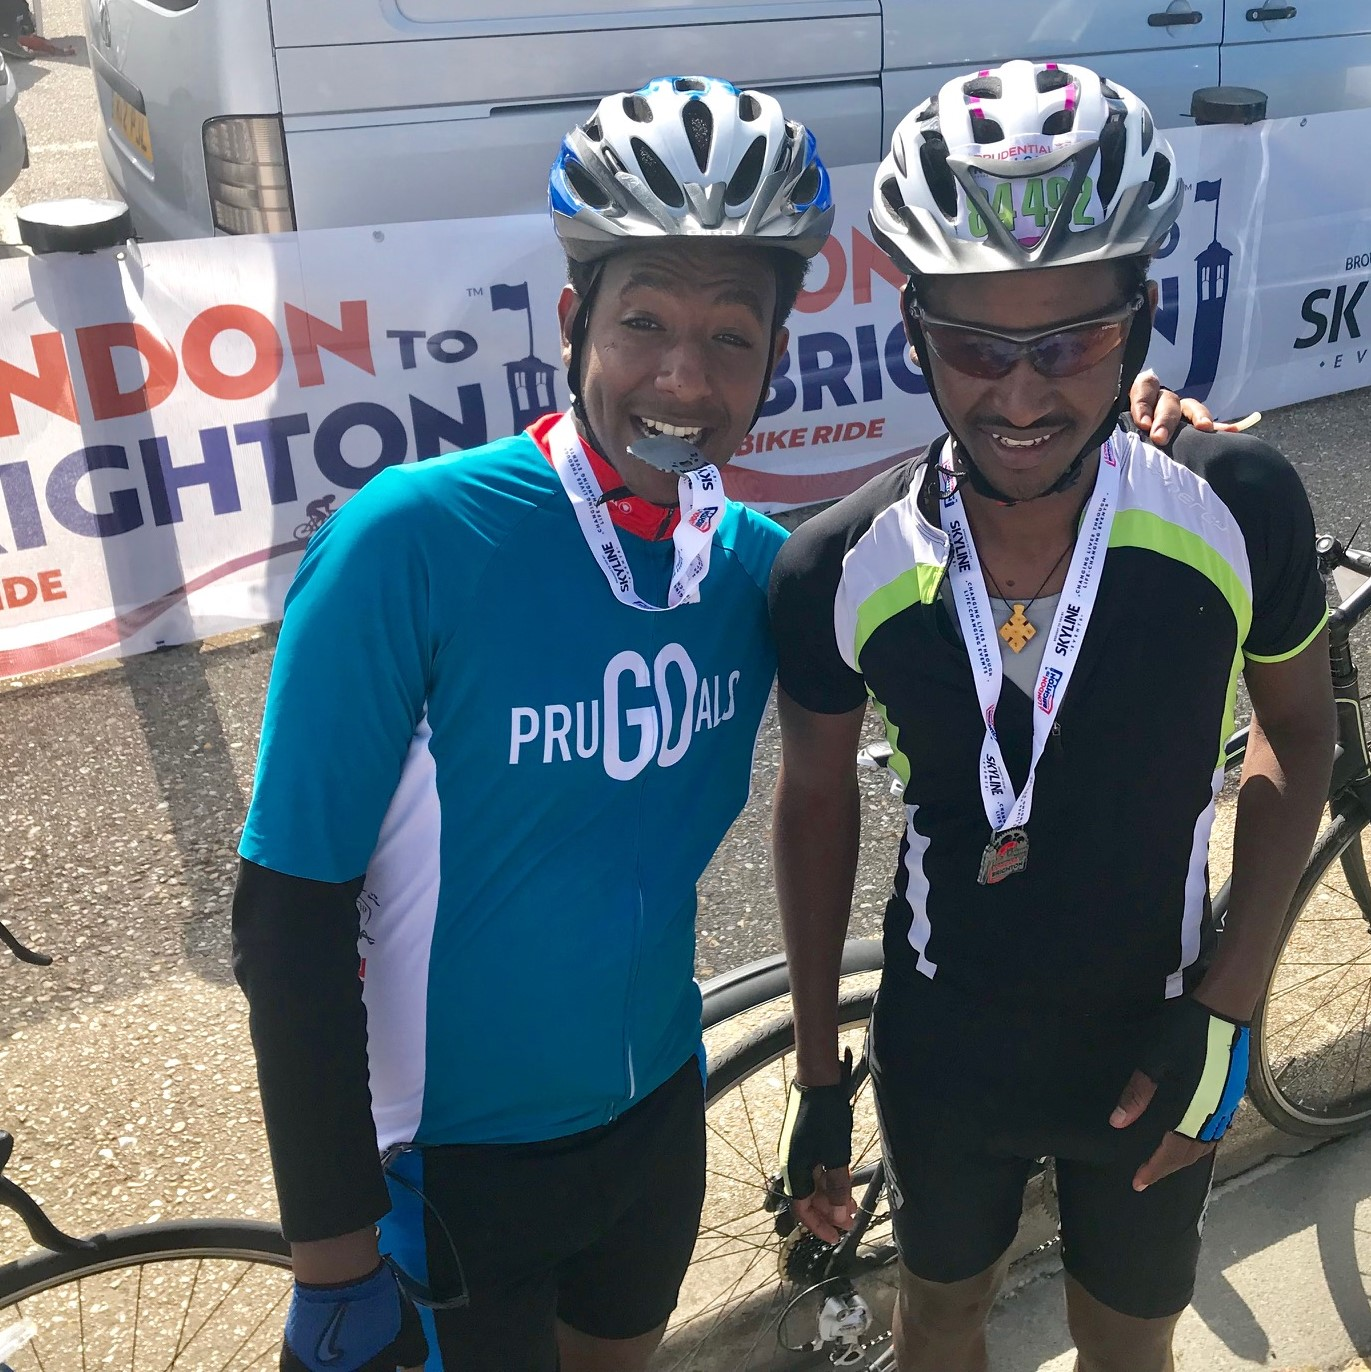 Mussie & Okubit's london to brighton - Raised £450